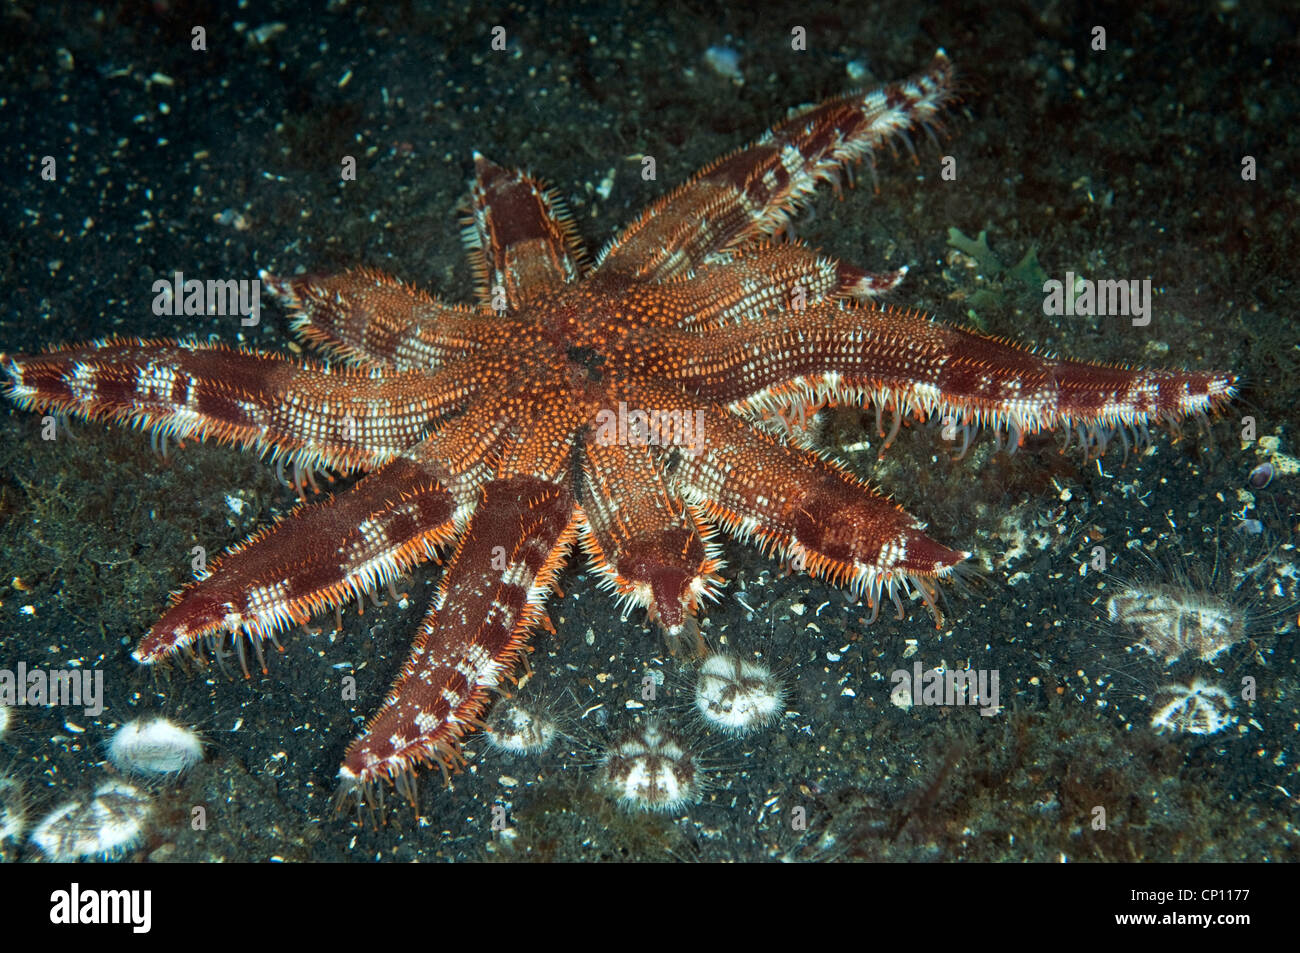 Multi armed starfish, Luidia sp., preying on urchins Sulawesi Indonesia - Stock Image